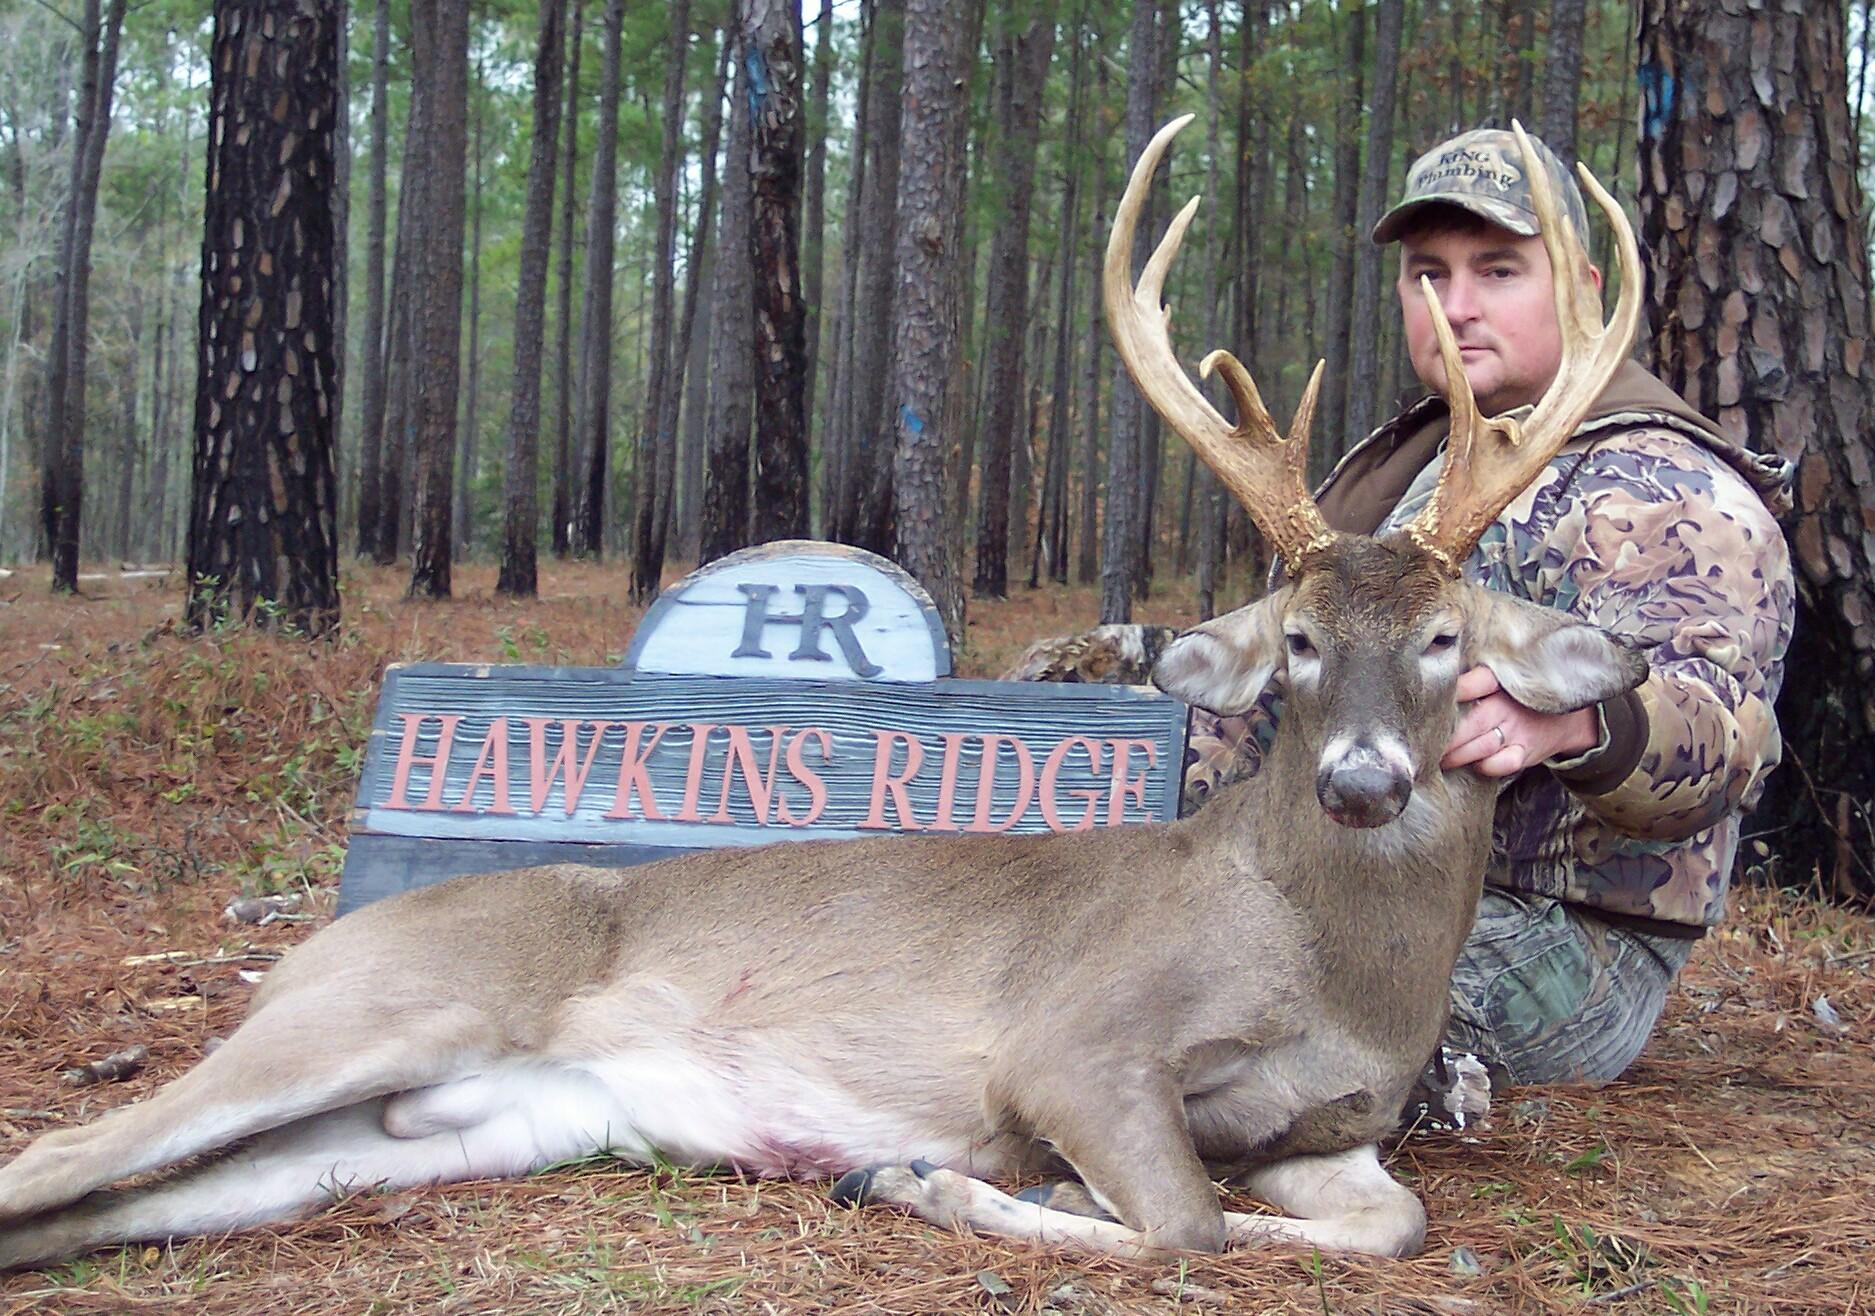 Alabama-deer-hunting-at-Hawkins-Ridge-4